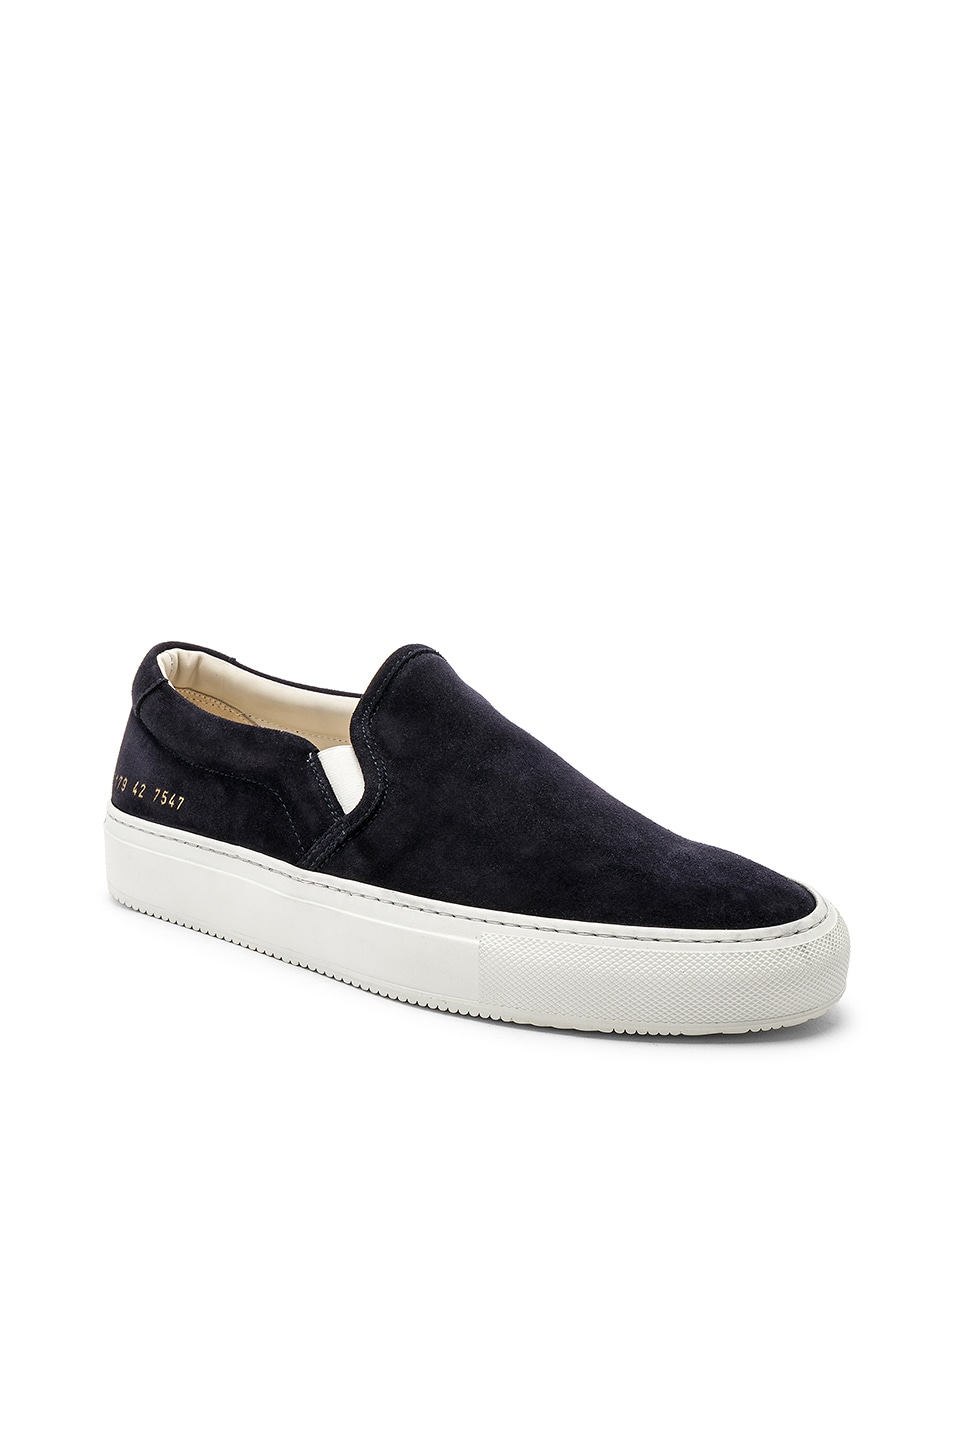 Common Projects Slip On Sneaker in Black